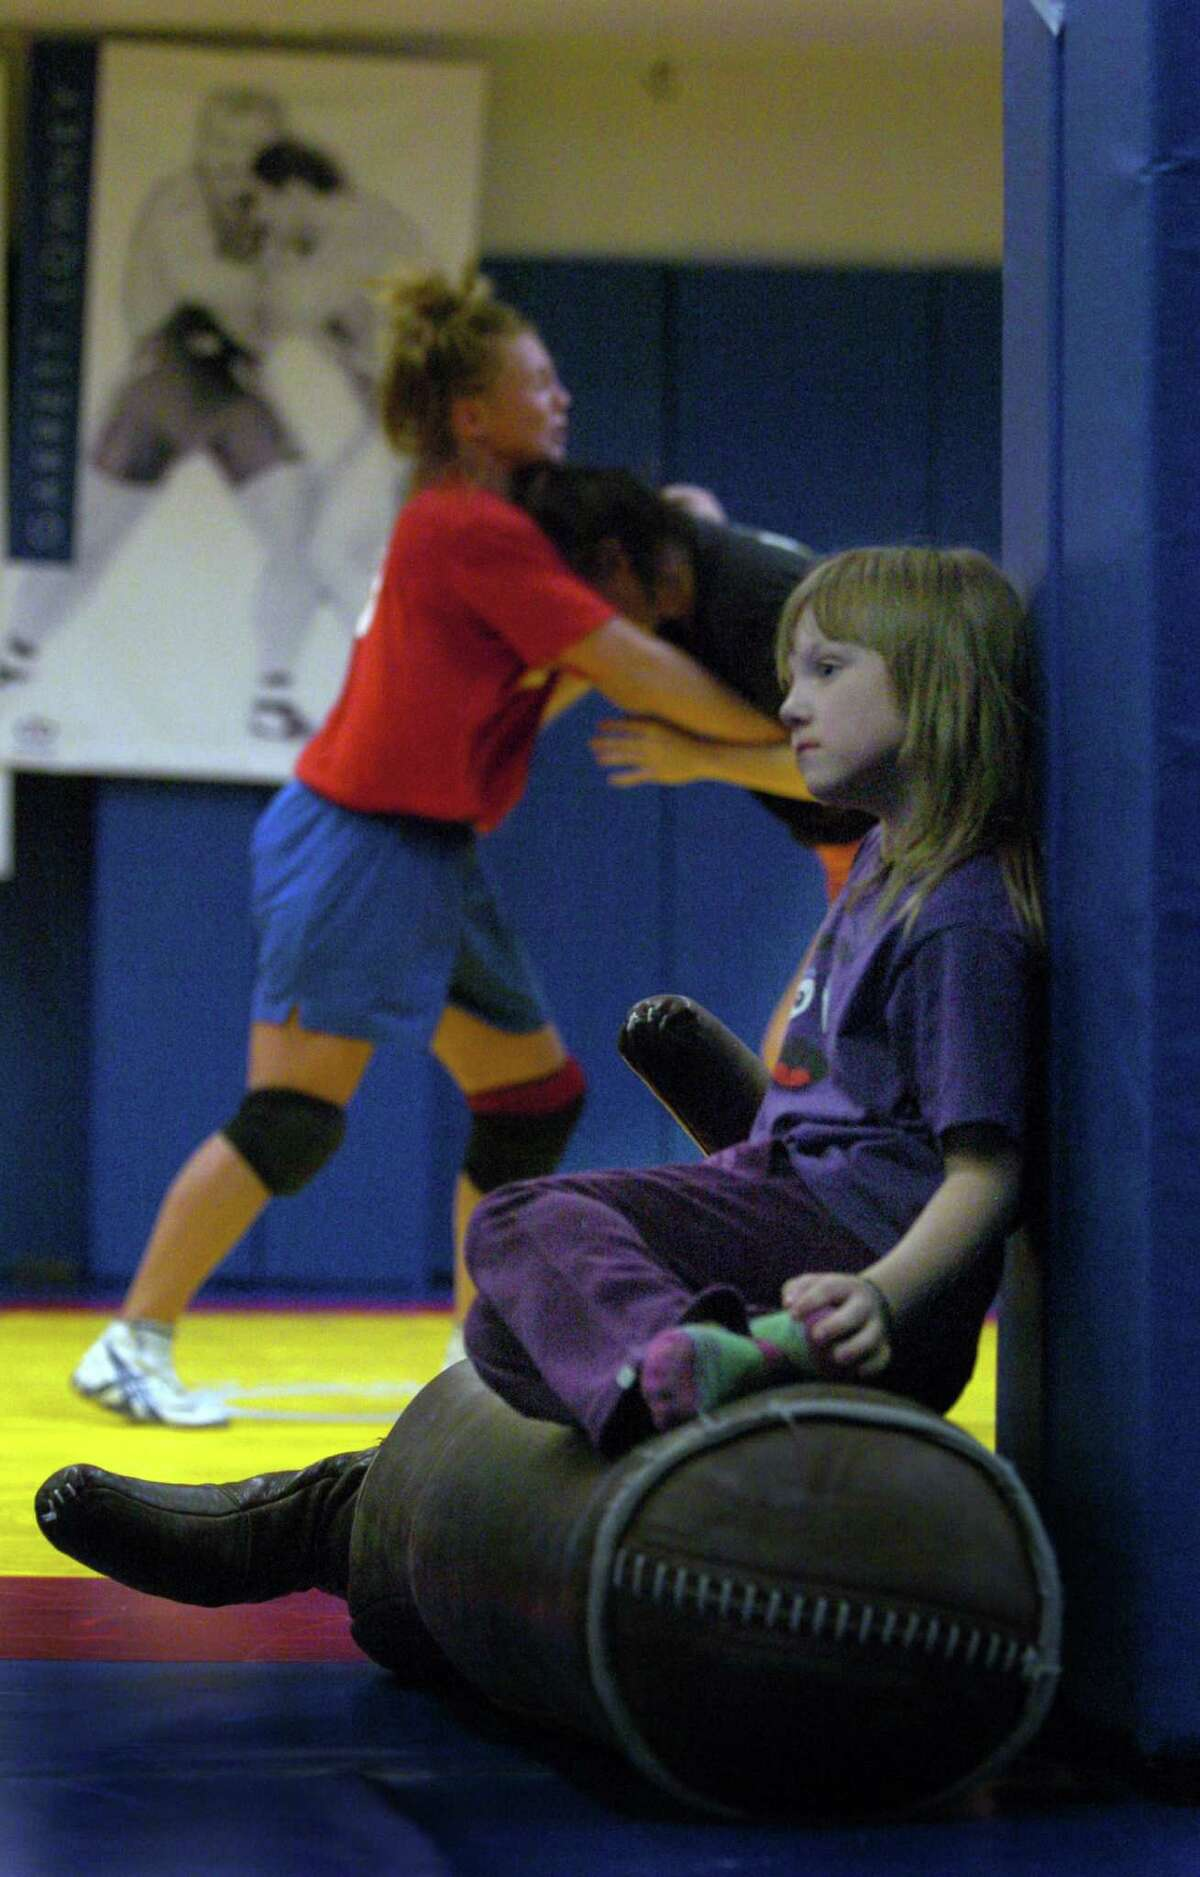 (DENVER, CO. 4/27/04) Kristie Marano, the only U.S. World Champion in 2003, is one of the most successful wrestlers of all time. She has been to 7 World Championships, and has won seven World Medals. She is also the mother of 6-year-old Kayla, born two weeks after Kristie won the University National and two weeks after her birth, Kristie won the U.S. Senior Nationals. Kayla watches her mother wrestling with fellow teammate Kaci Lyle, 22, from Eureka, California, during practice. (ROCKY MOUNTAIN NEWS PHOTO BY JUDY WALGREN)